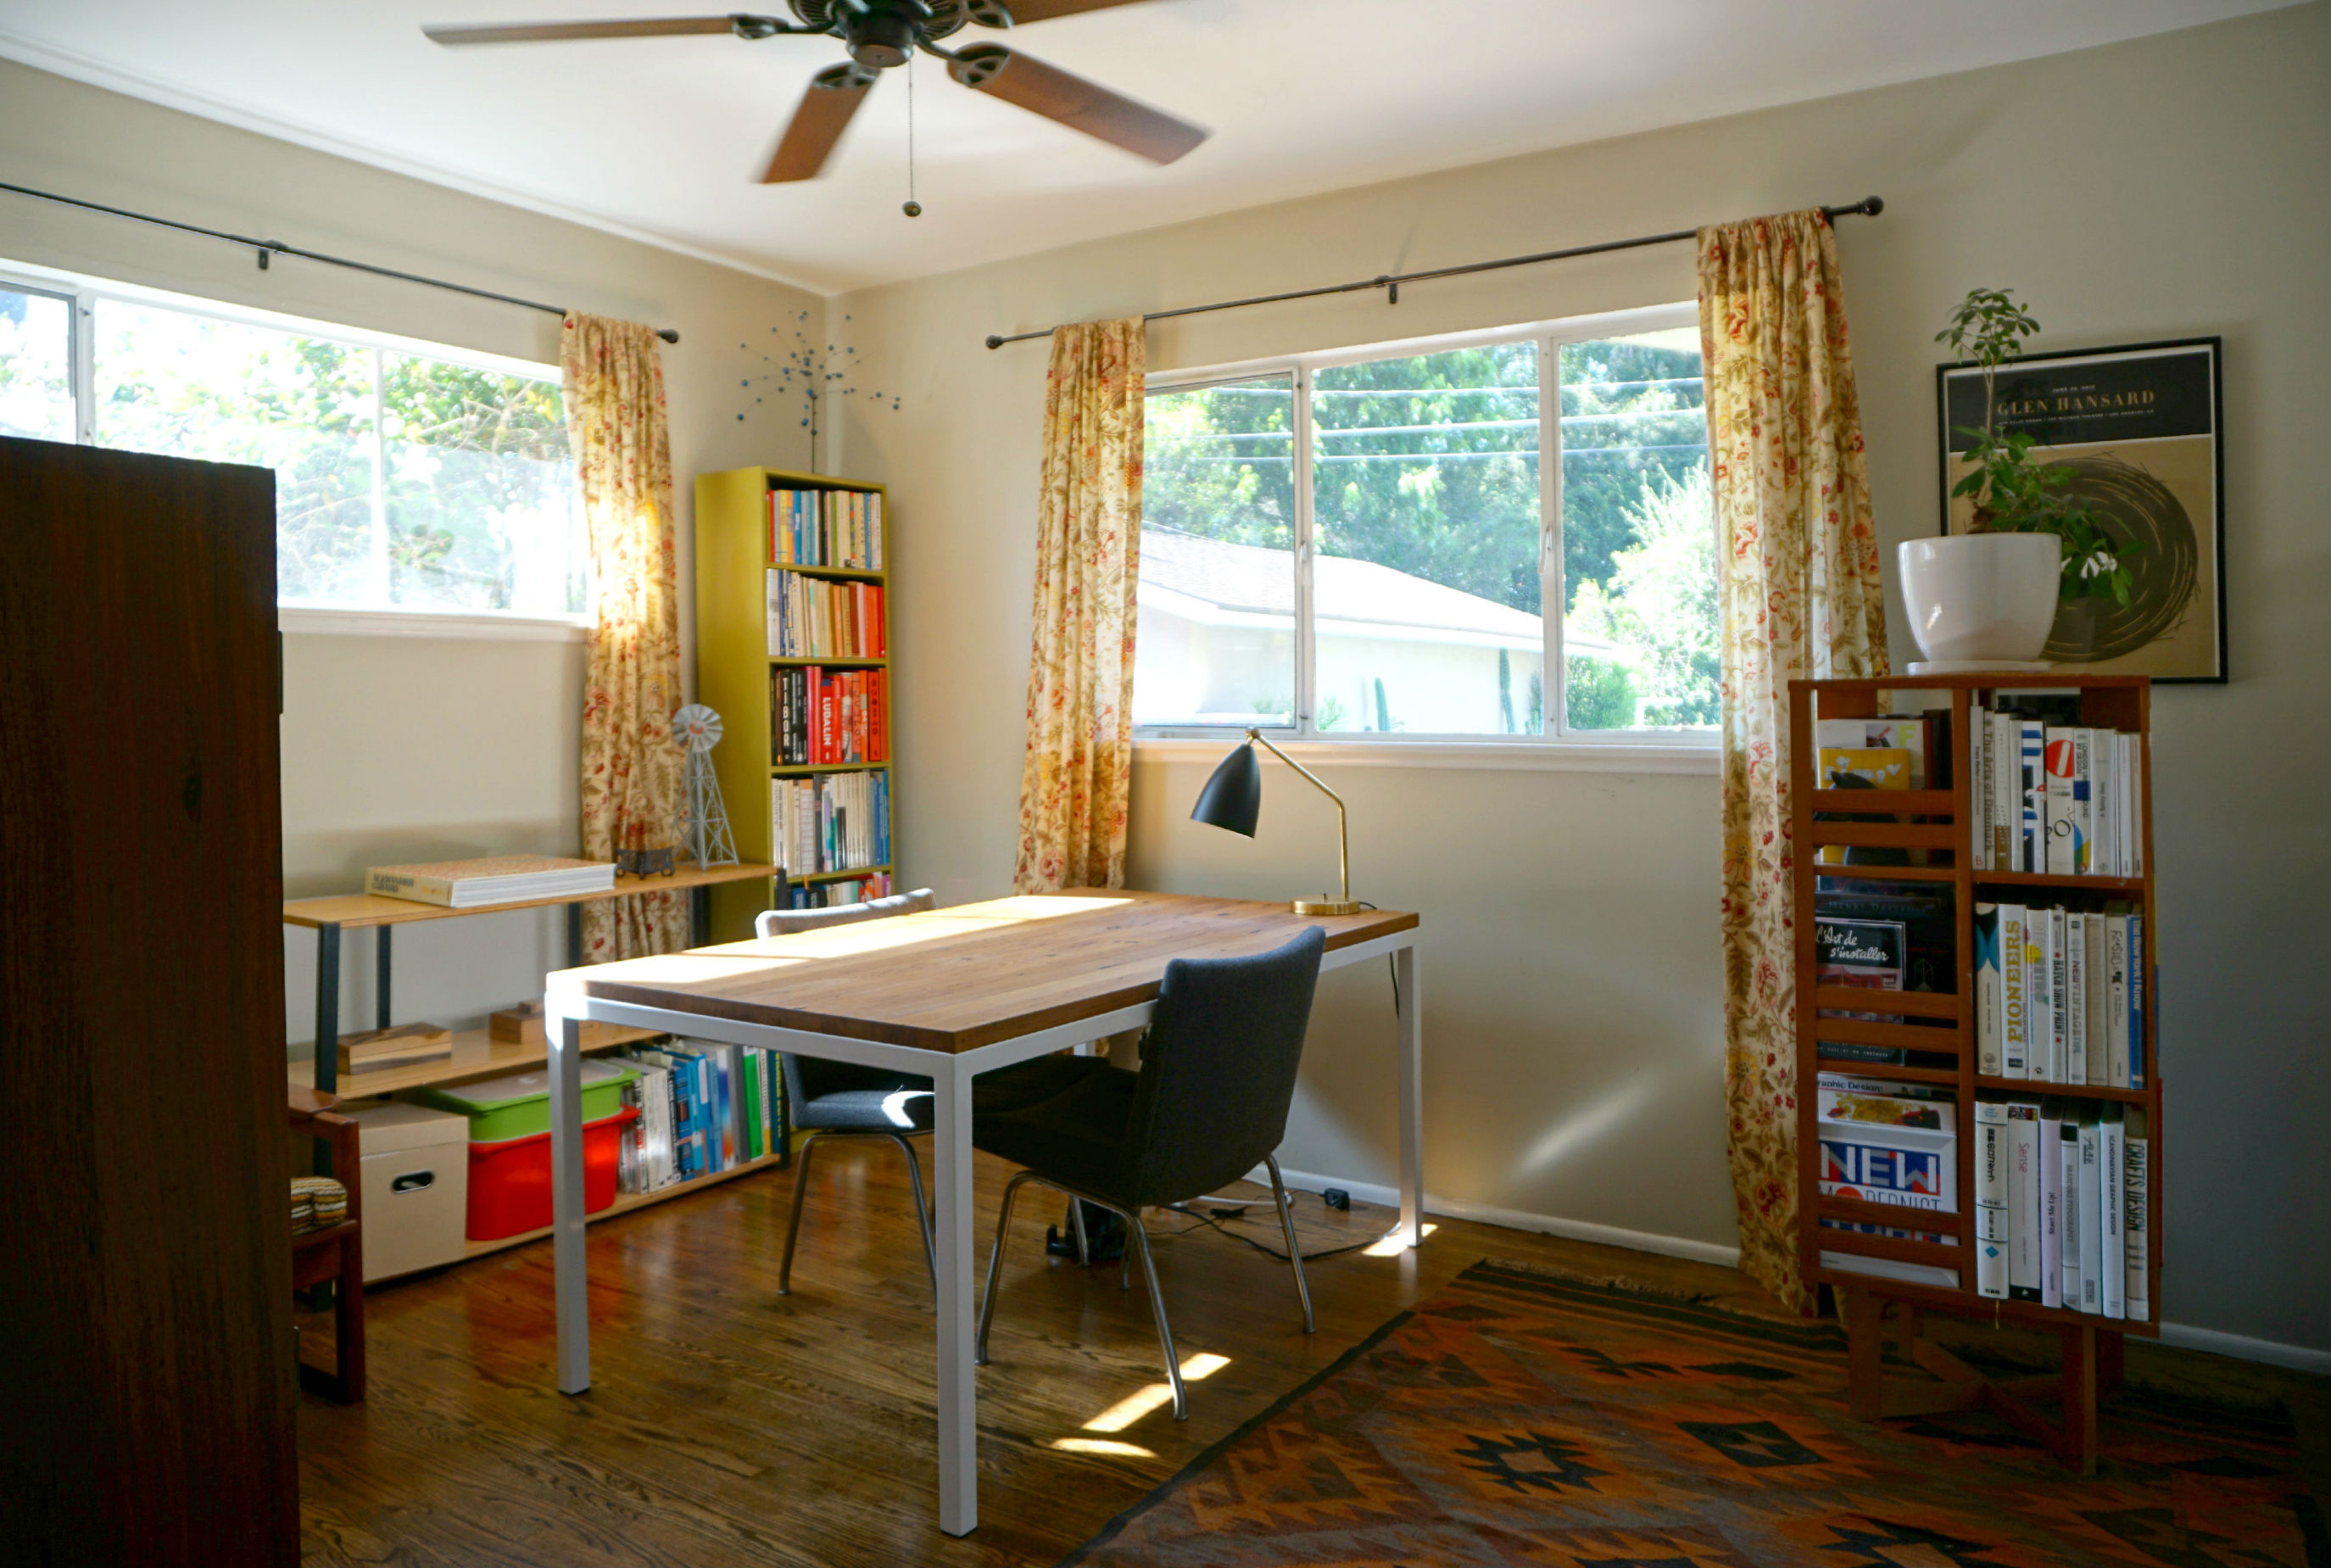 One Of The Three Bedrooms, Being Used As An Office, With Ceiling Fan And